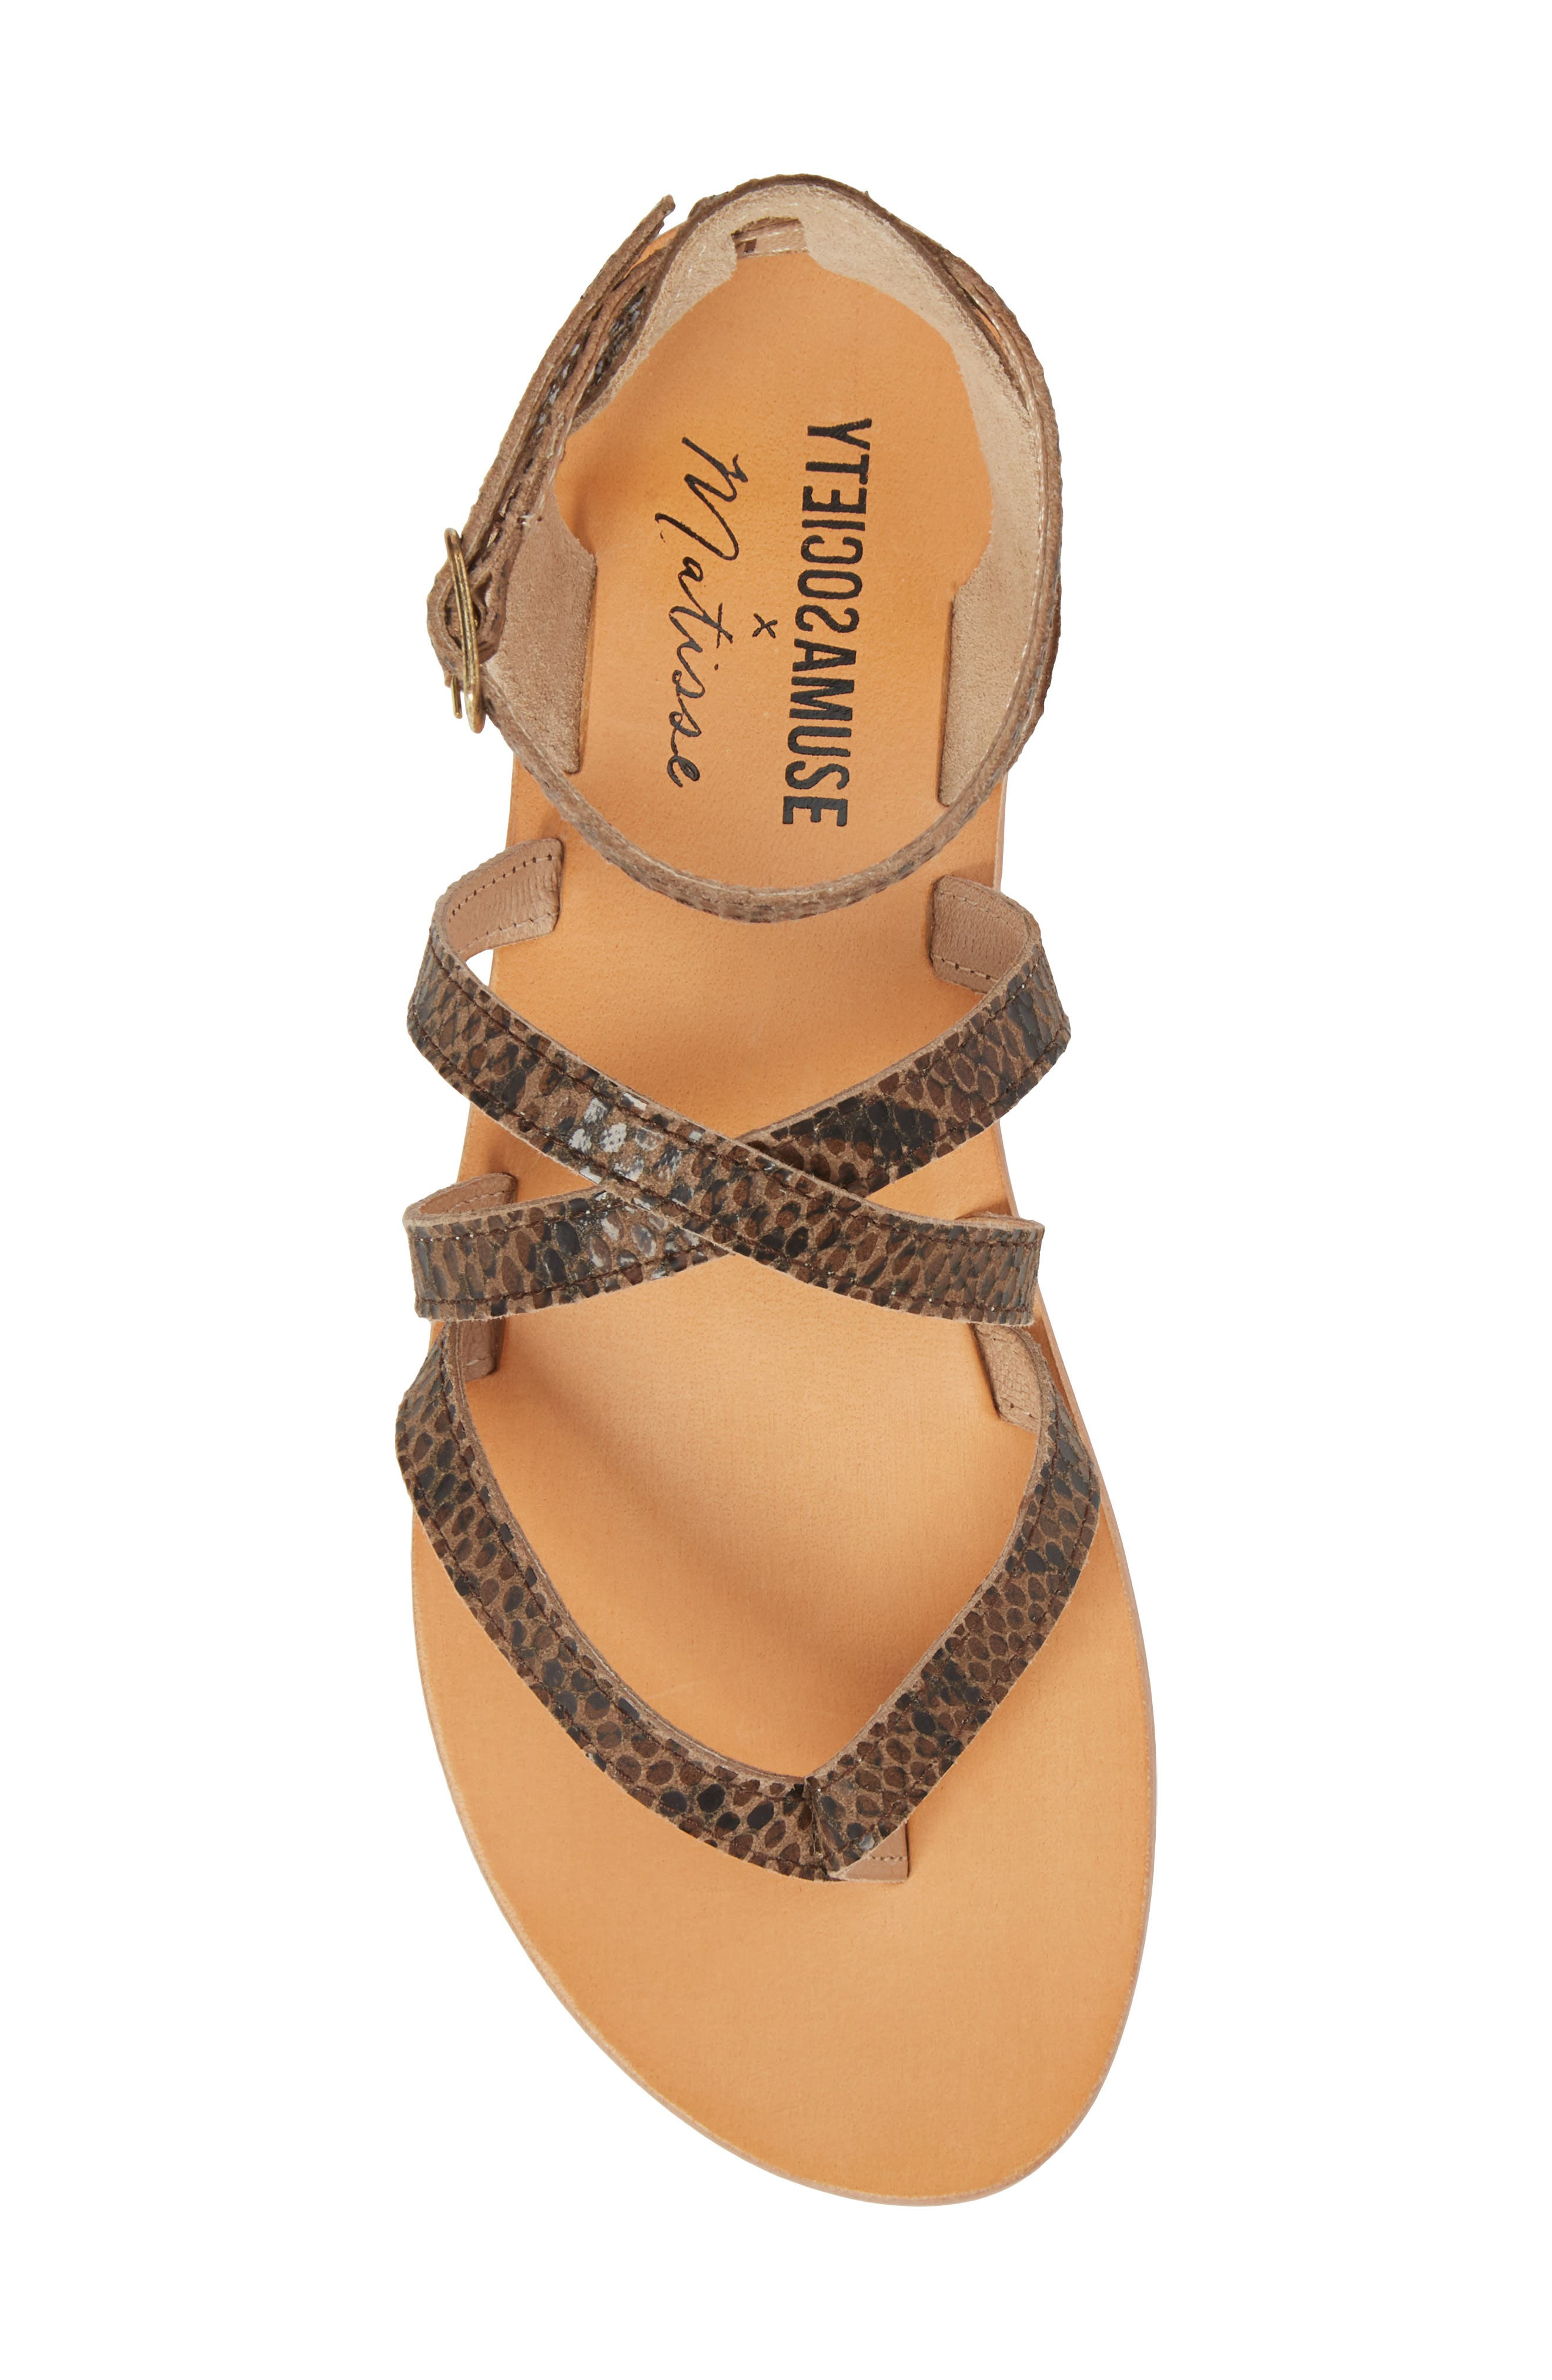 Strappy Sandal,                             Alternate thumbnail 5, color,                             Brown Snake Leather